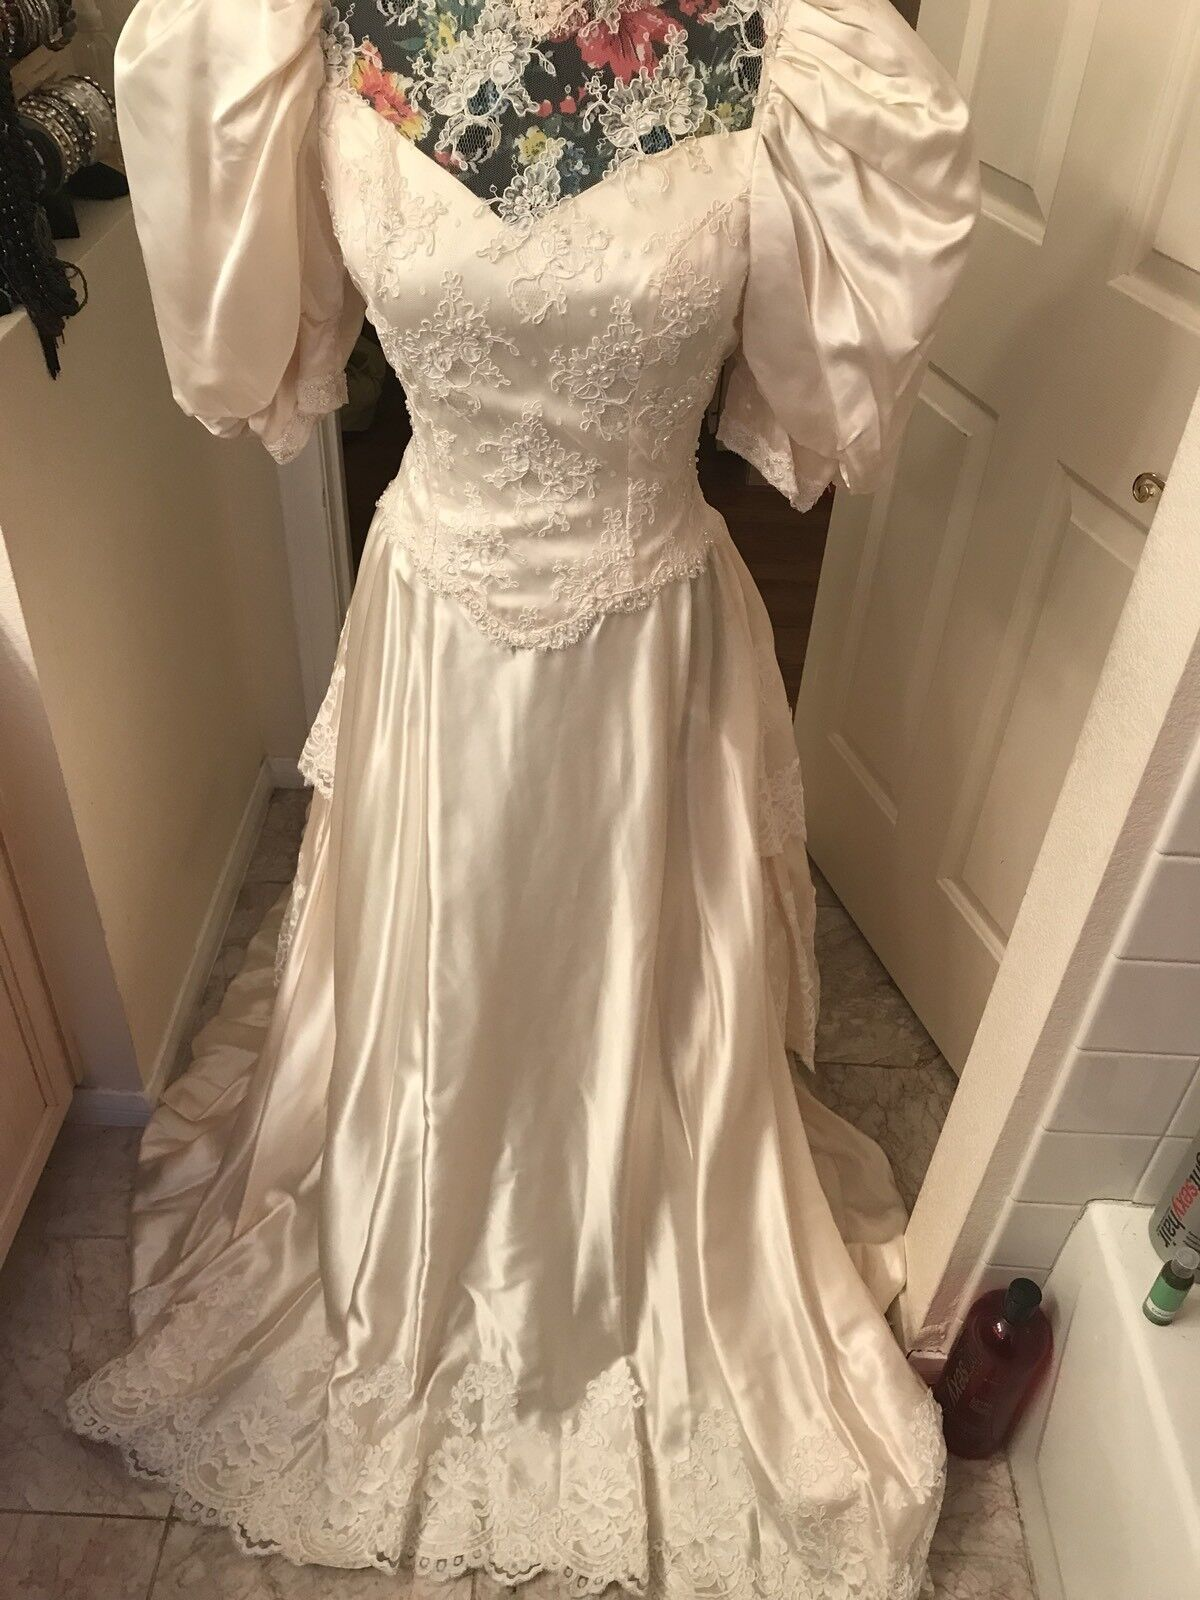 Wedding Gown vintage $9000victorin style 2/6custom-made pale Cream taffeta train